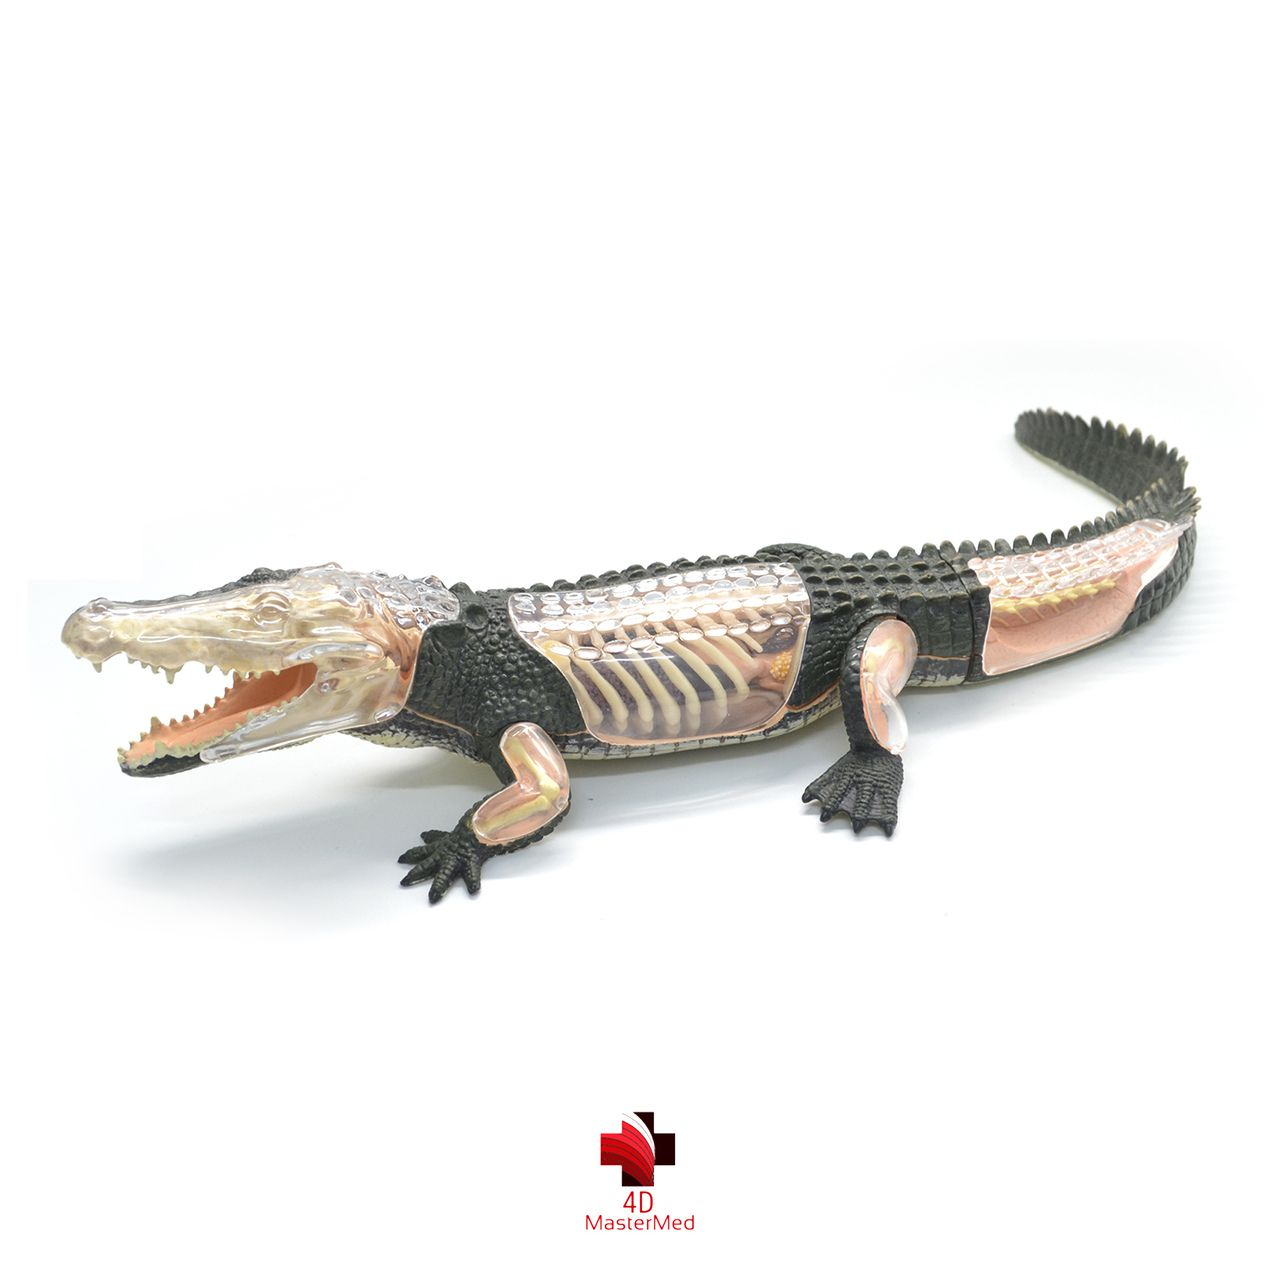 Anatomia do Crocodilo